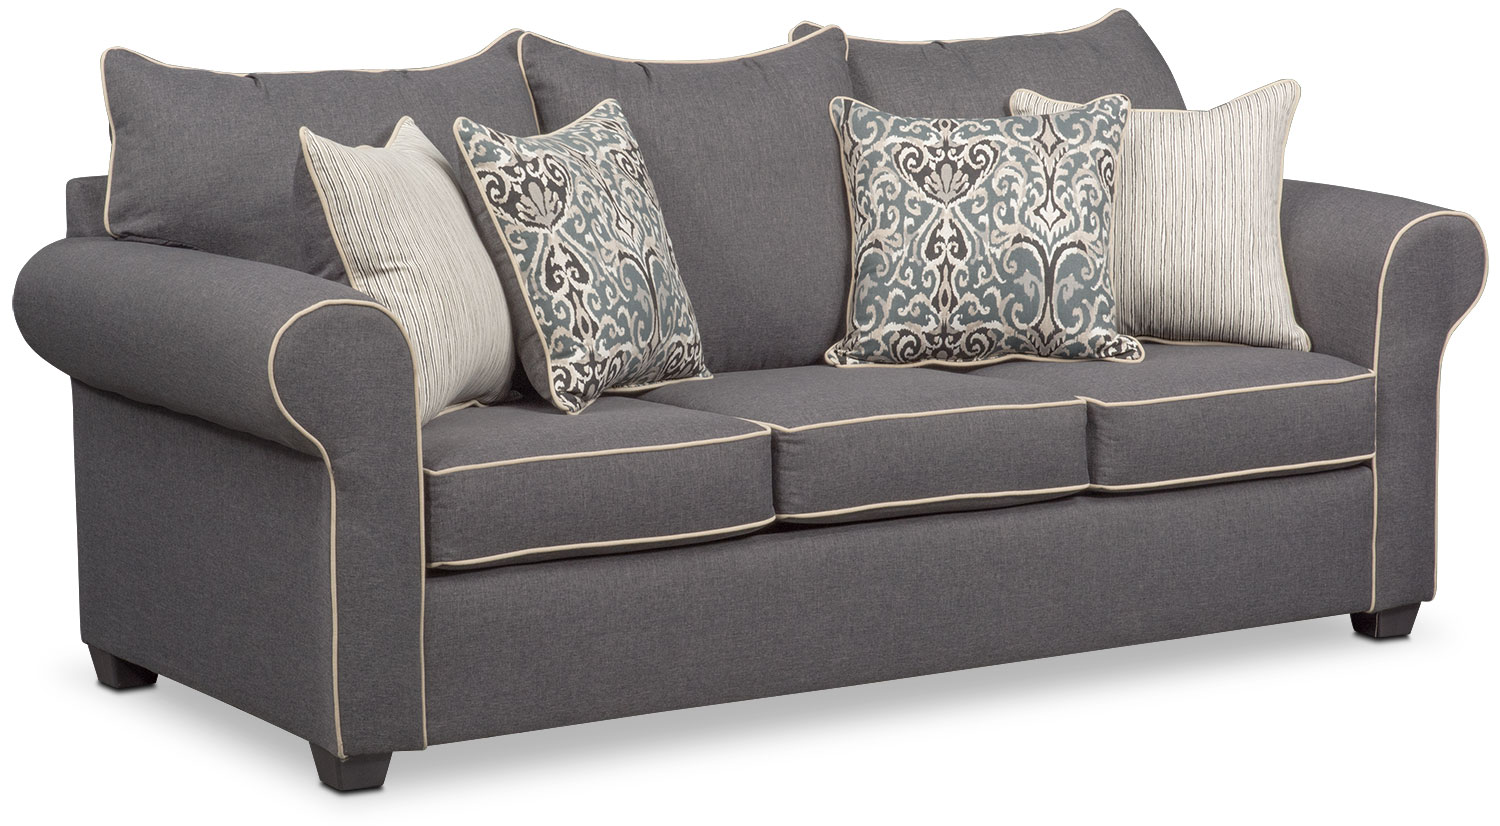 Living Room Furniture   Carla Queen Memory Foam Sleeper Sofa   Gray